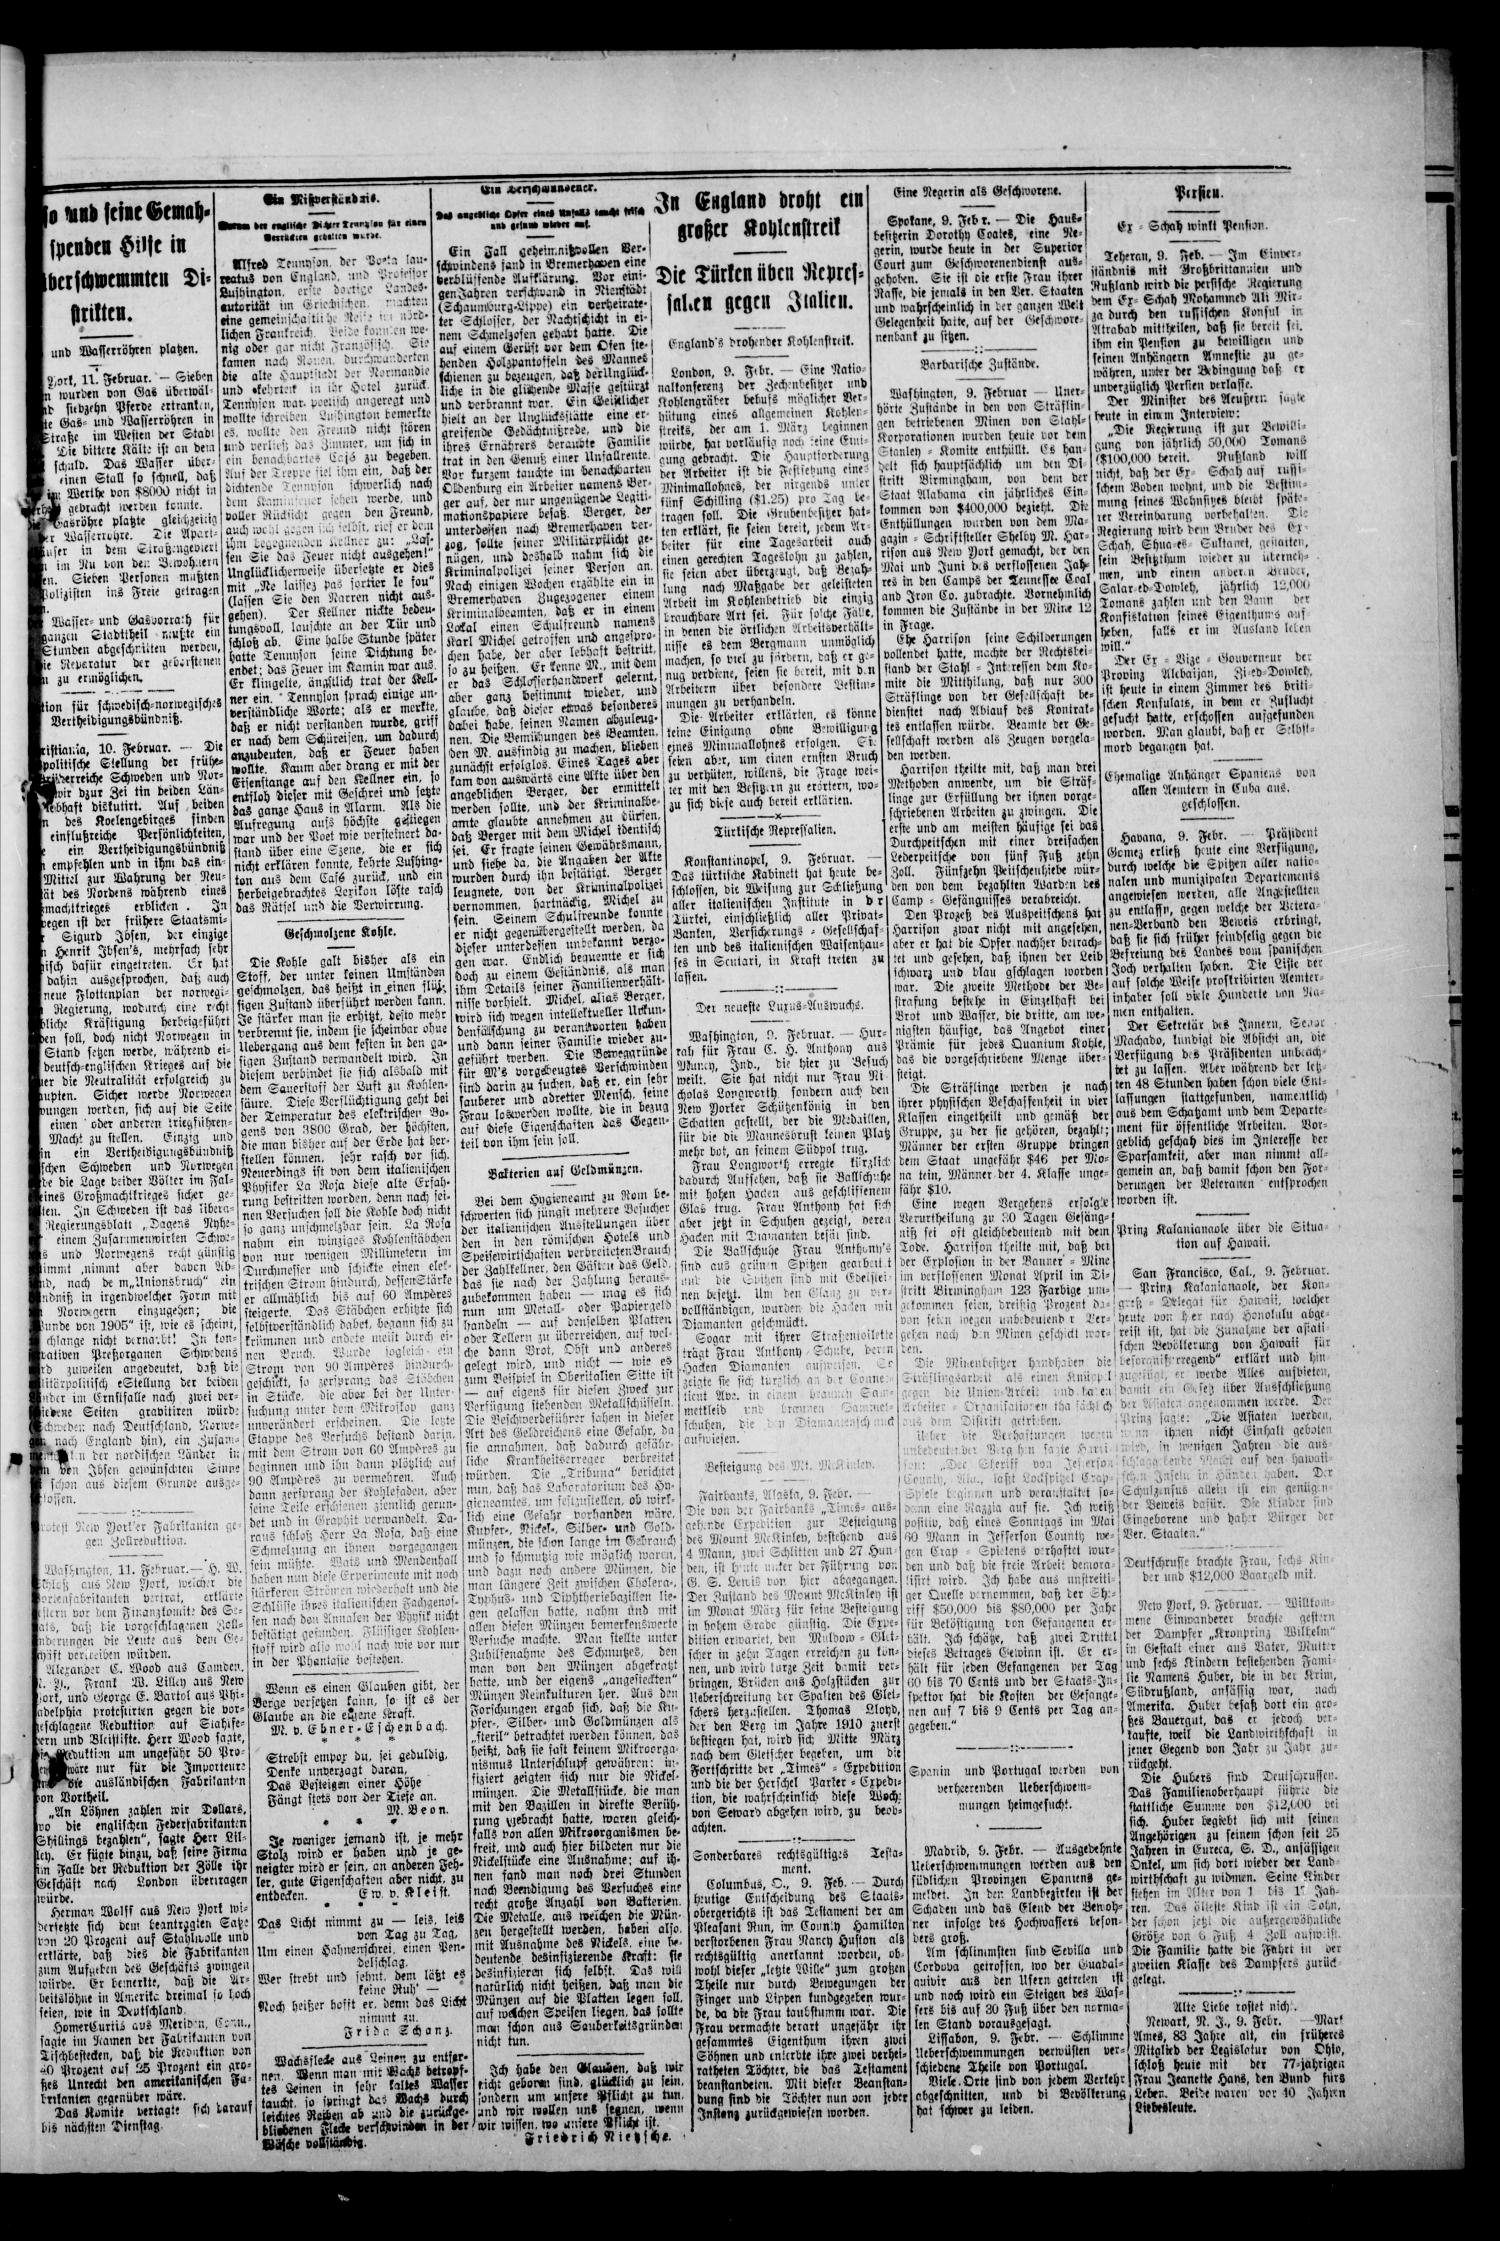 Oklahoma Neuigkeiten. (Perry, Okla.), Vol. 10, No. 42, Ed. 1 Thursday, February 15, 1912                                                                                                      [Sequence #]: 5 of 8